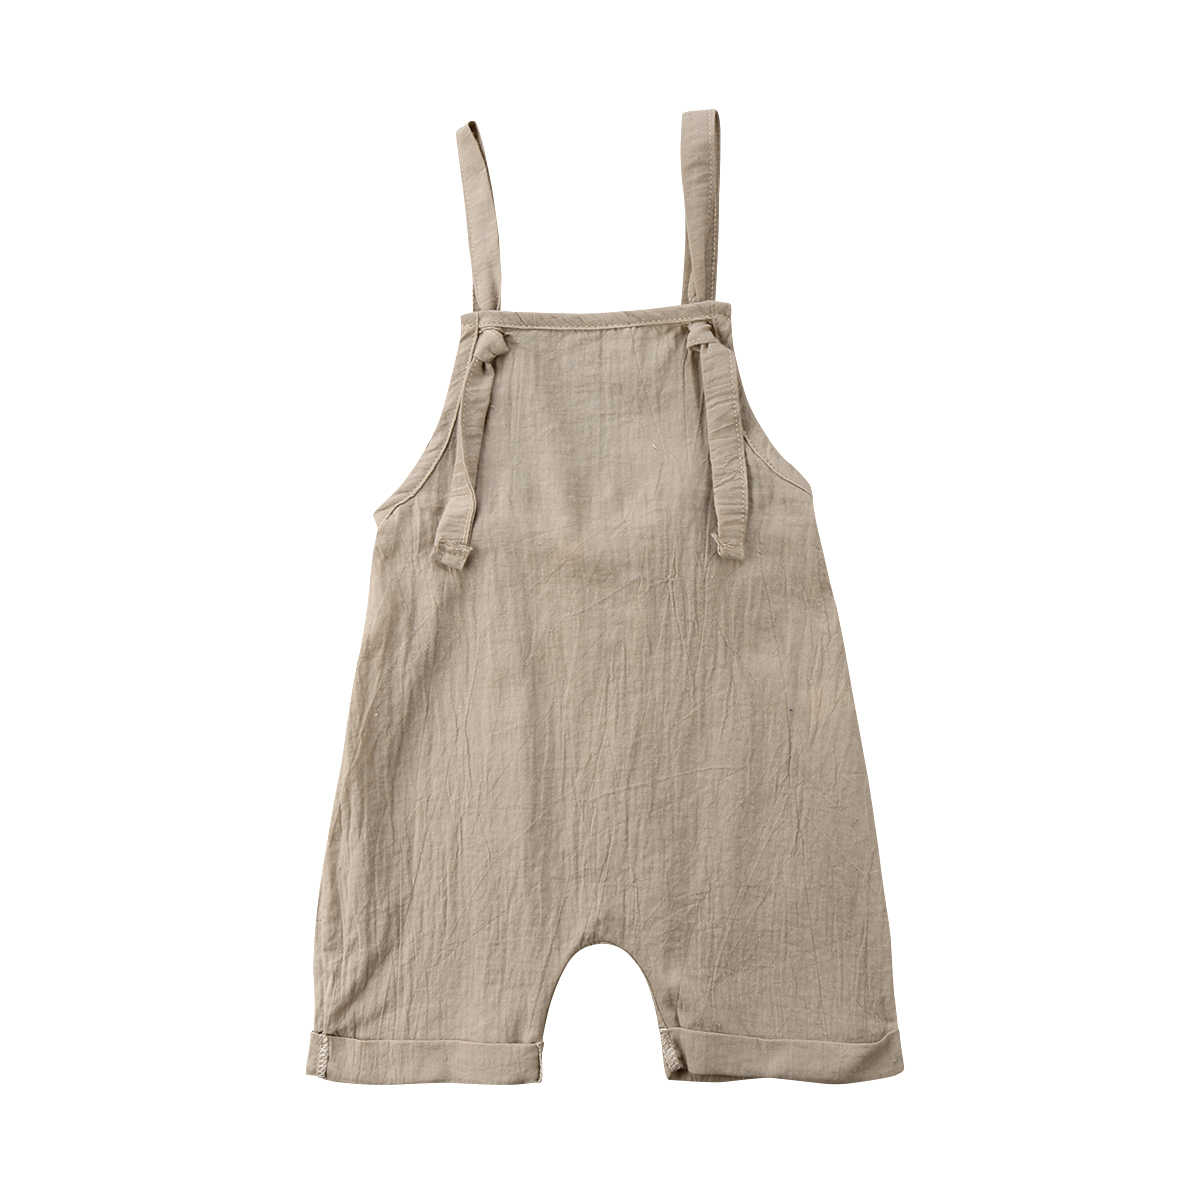 dbc5a0cb663a Detail Feedback Questions about Summer Toddler Kids Boy Girl Bib Pants Romper  Jumpsuit Playsuit Outfits Fit For 0 3T on Aliexpress.com